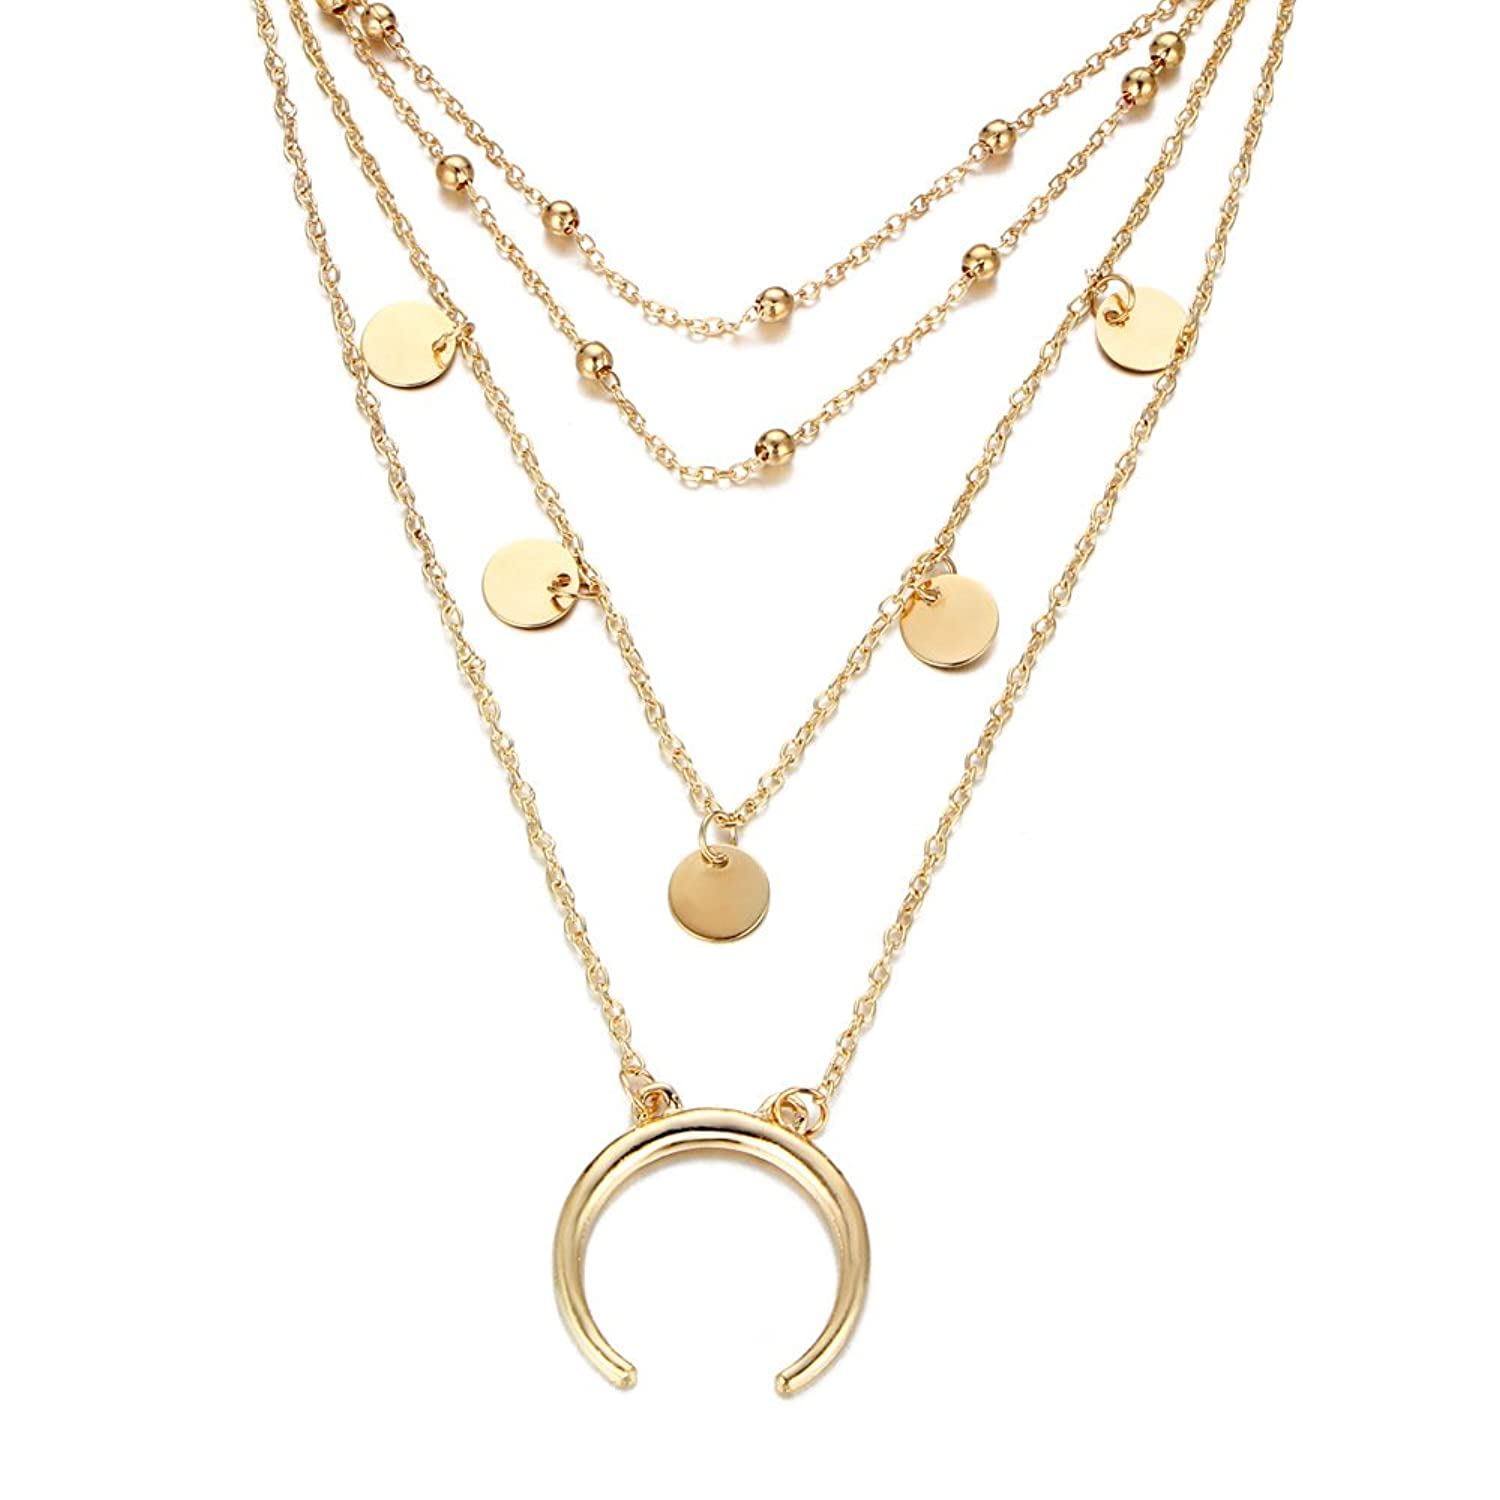 Lureme Multi-layer Necklace Choker Beads Disc Coin Horn Necklace for Women (nl005662)